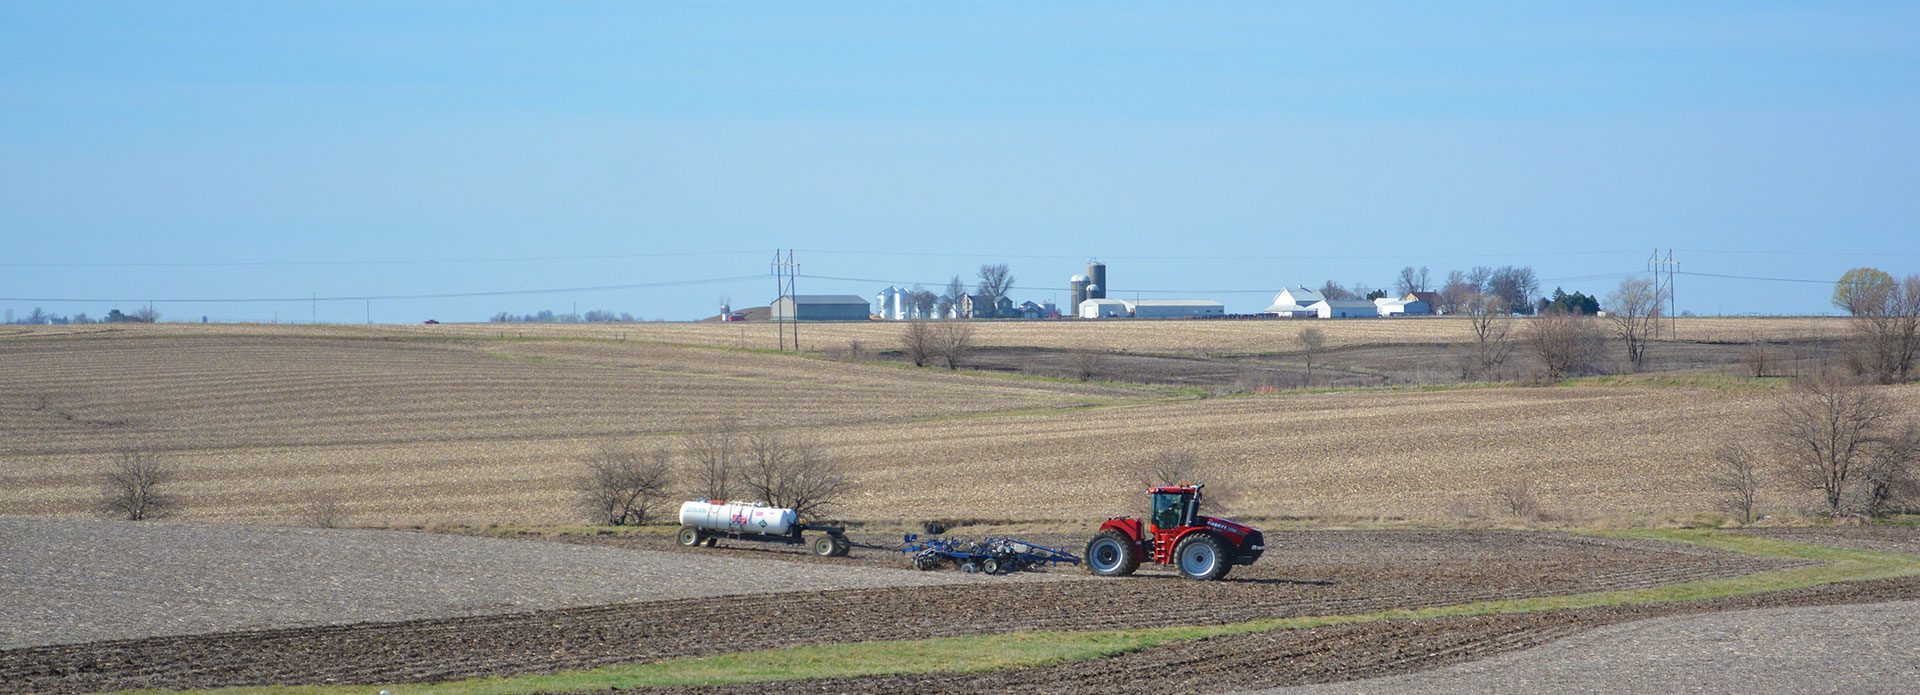 Eldon-C-Stutsman-Inc-Agronomy-Custom-Anhydrous-Application